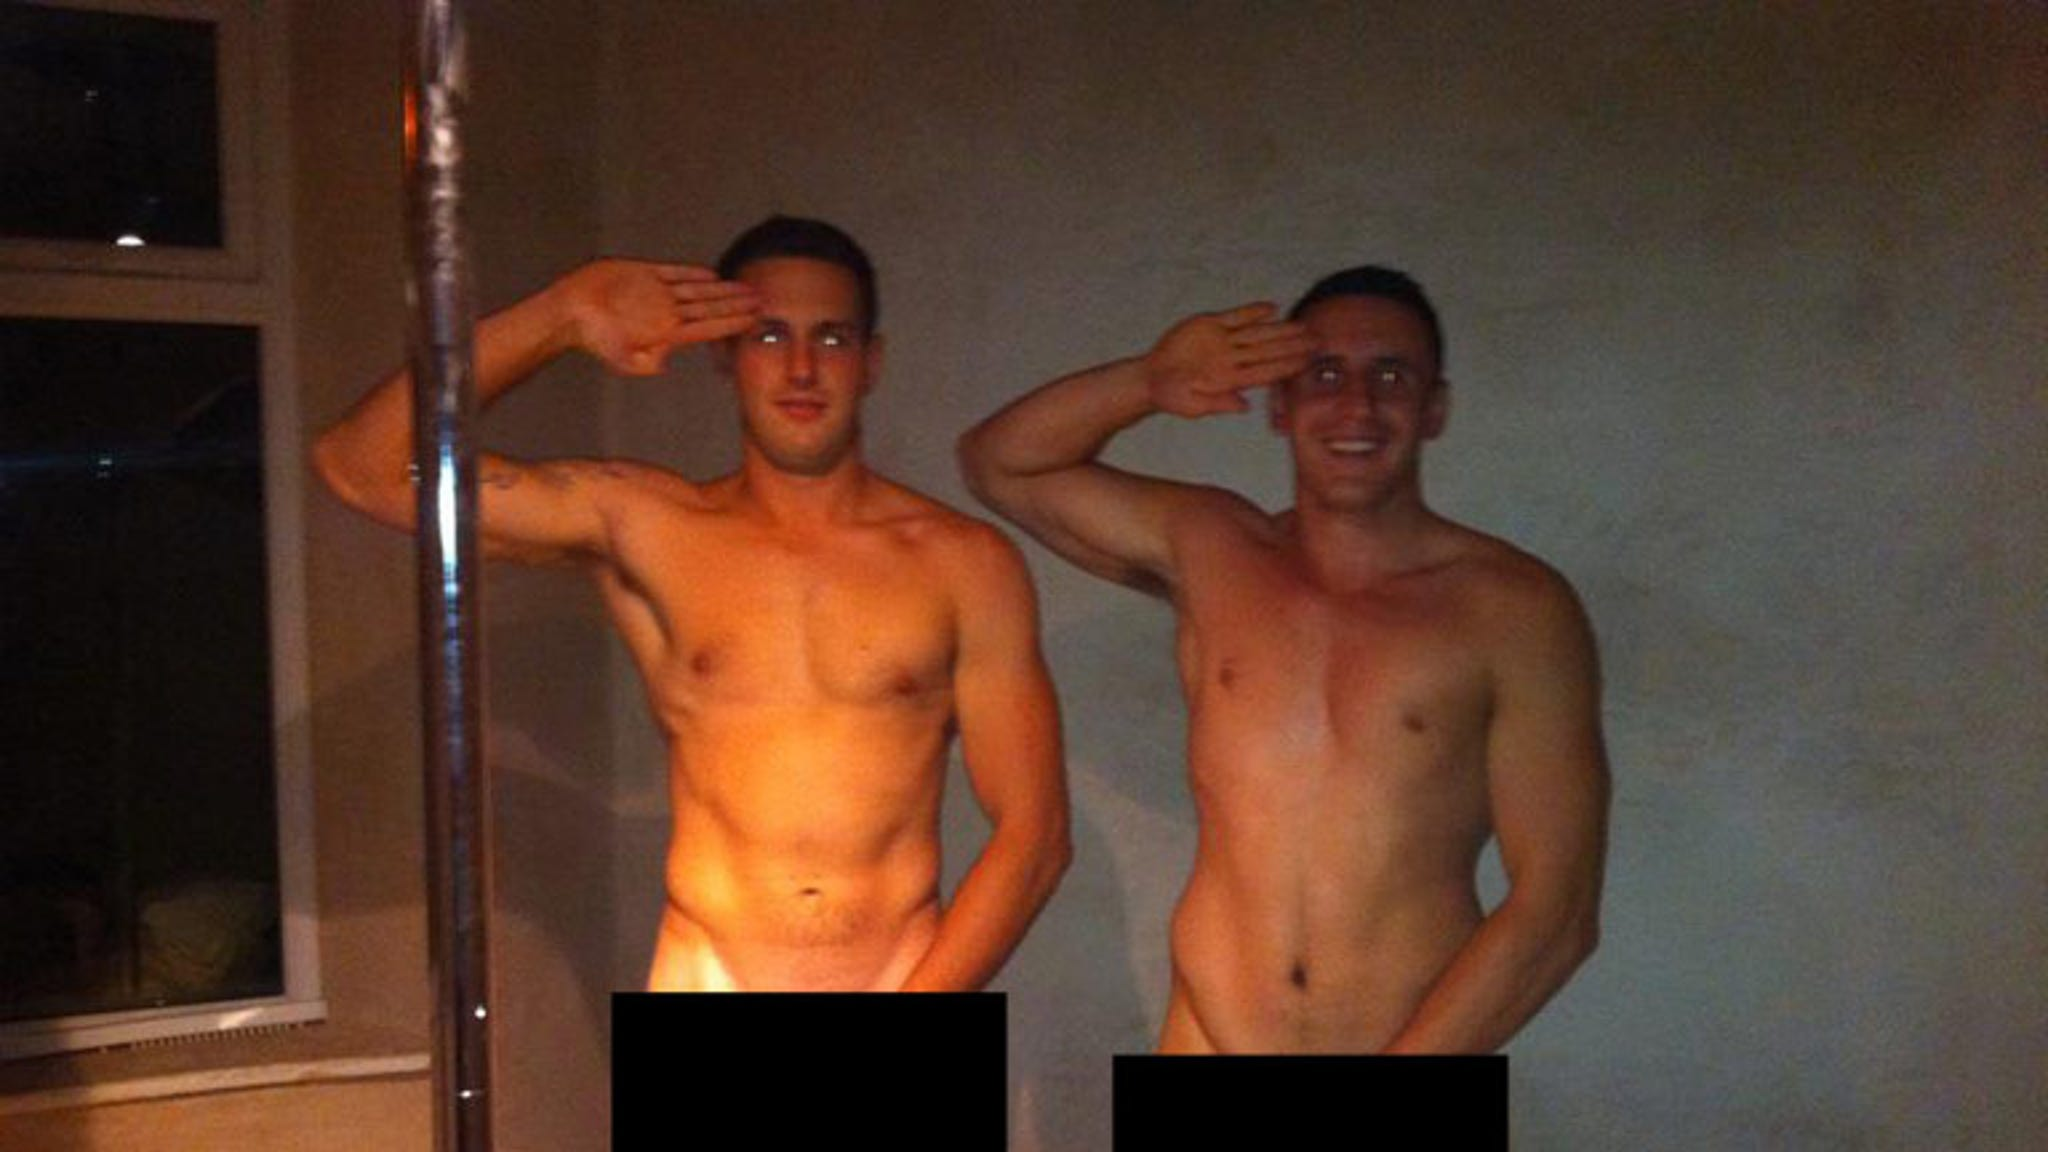 Prince Harry -- Naked Pictures of Las Vegas Rager Leaked